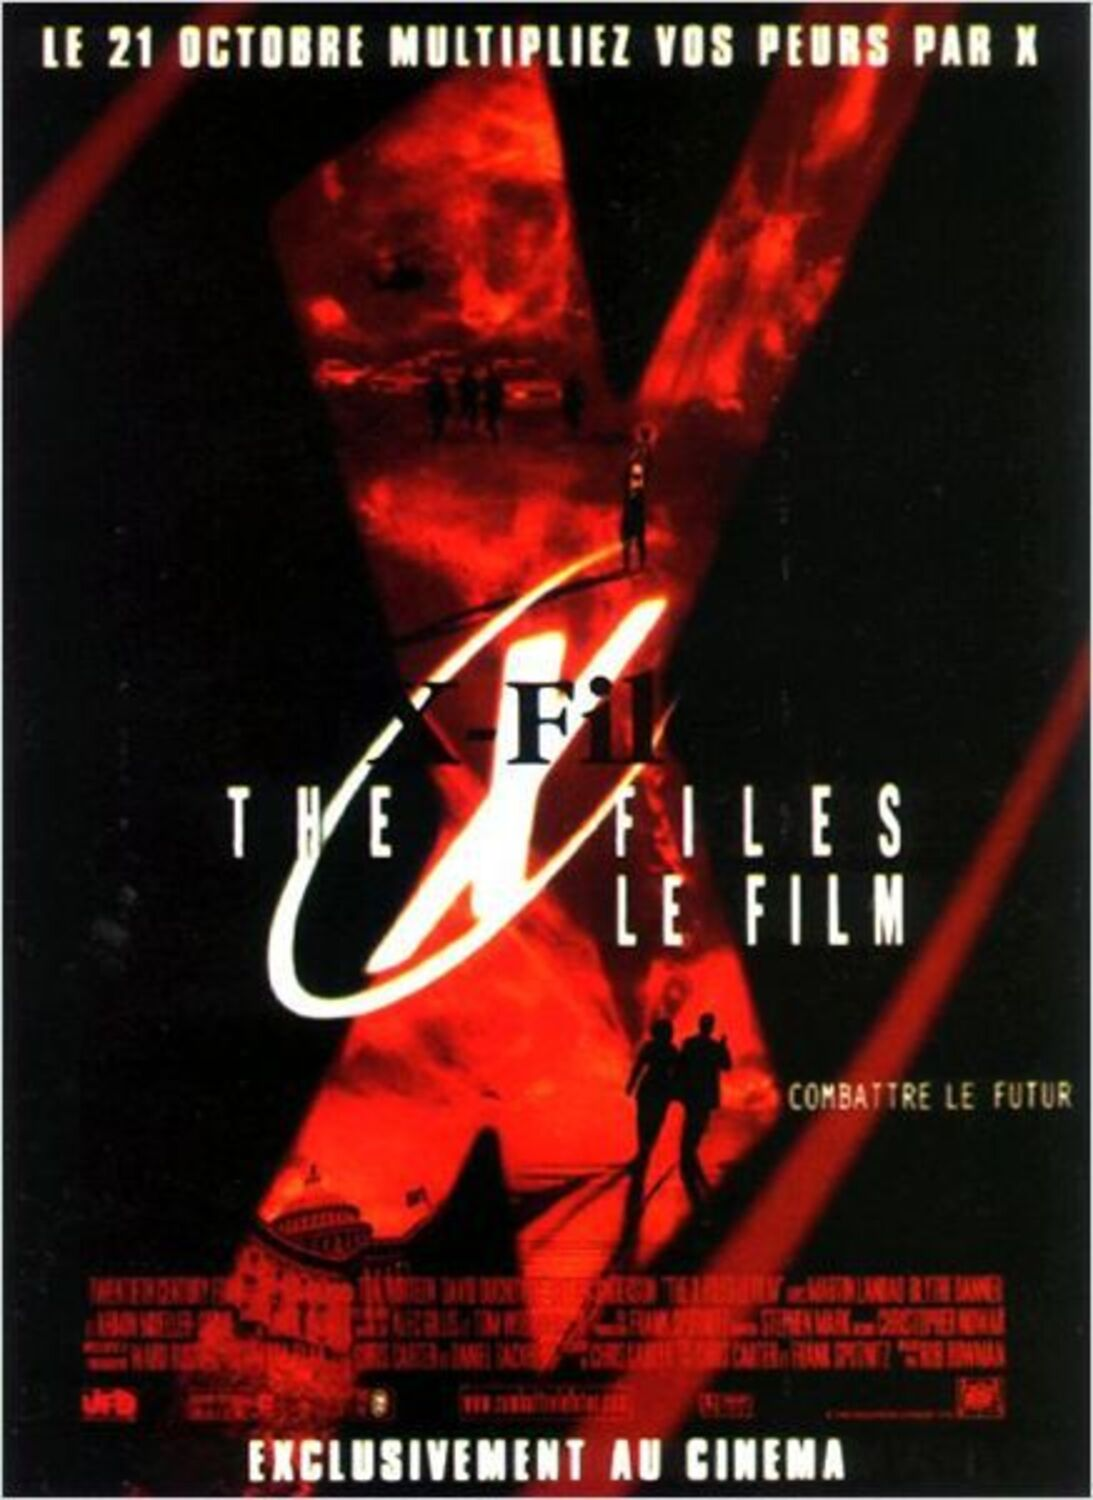 affiche poster x-files combattre fight futur disney fox